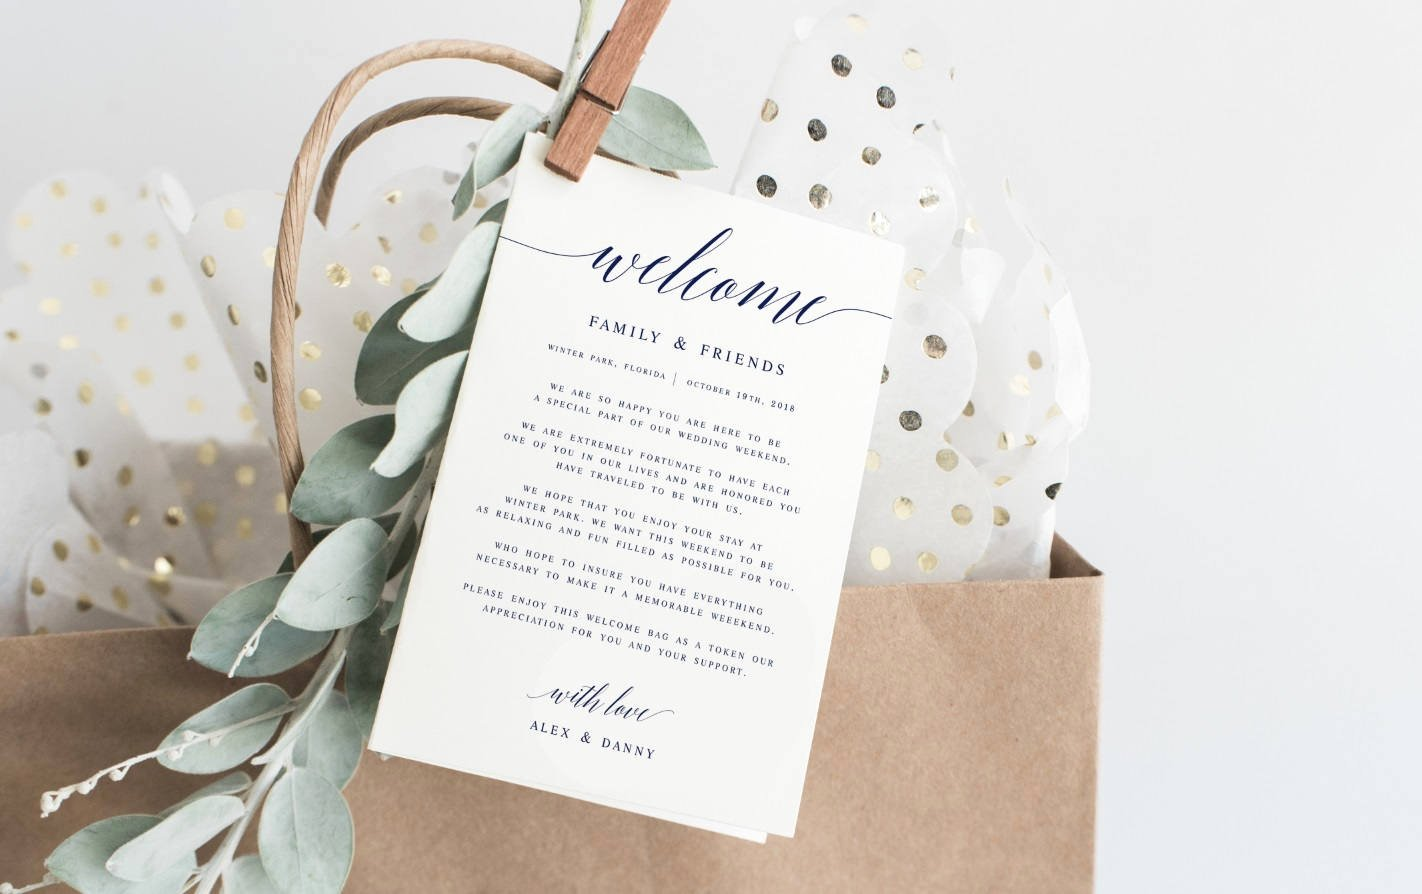 Wedding Welcome Letter Template Free Luxury Navy Modern Calligraphy Wel E Wedding Letter Template